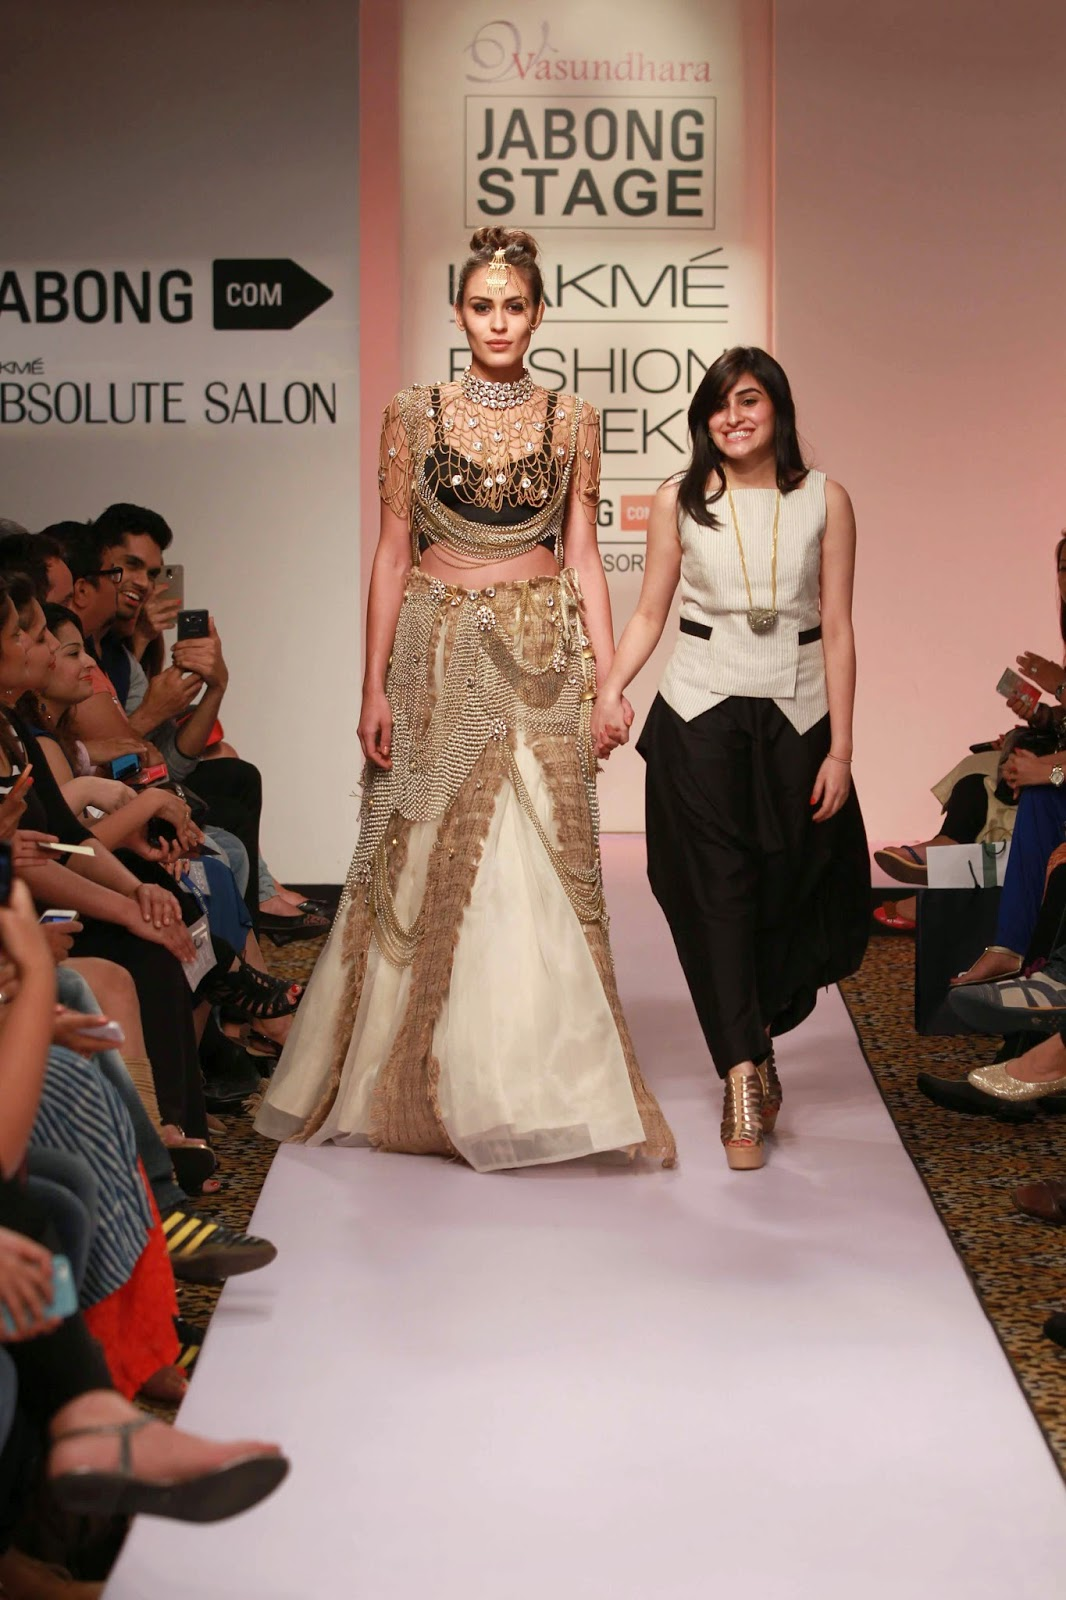 http://aquaintperspective.blogspot.in/, LIFW Day 2,Vasundhara Mantri